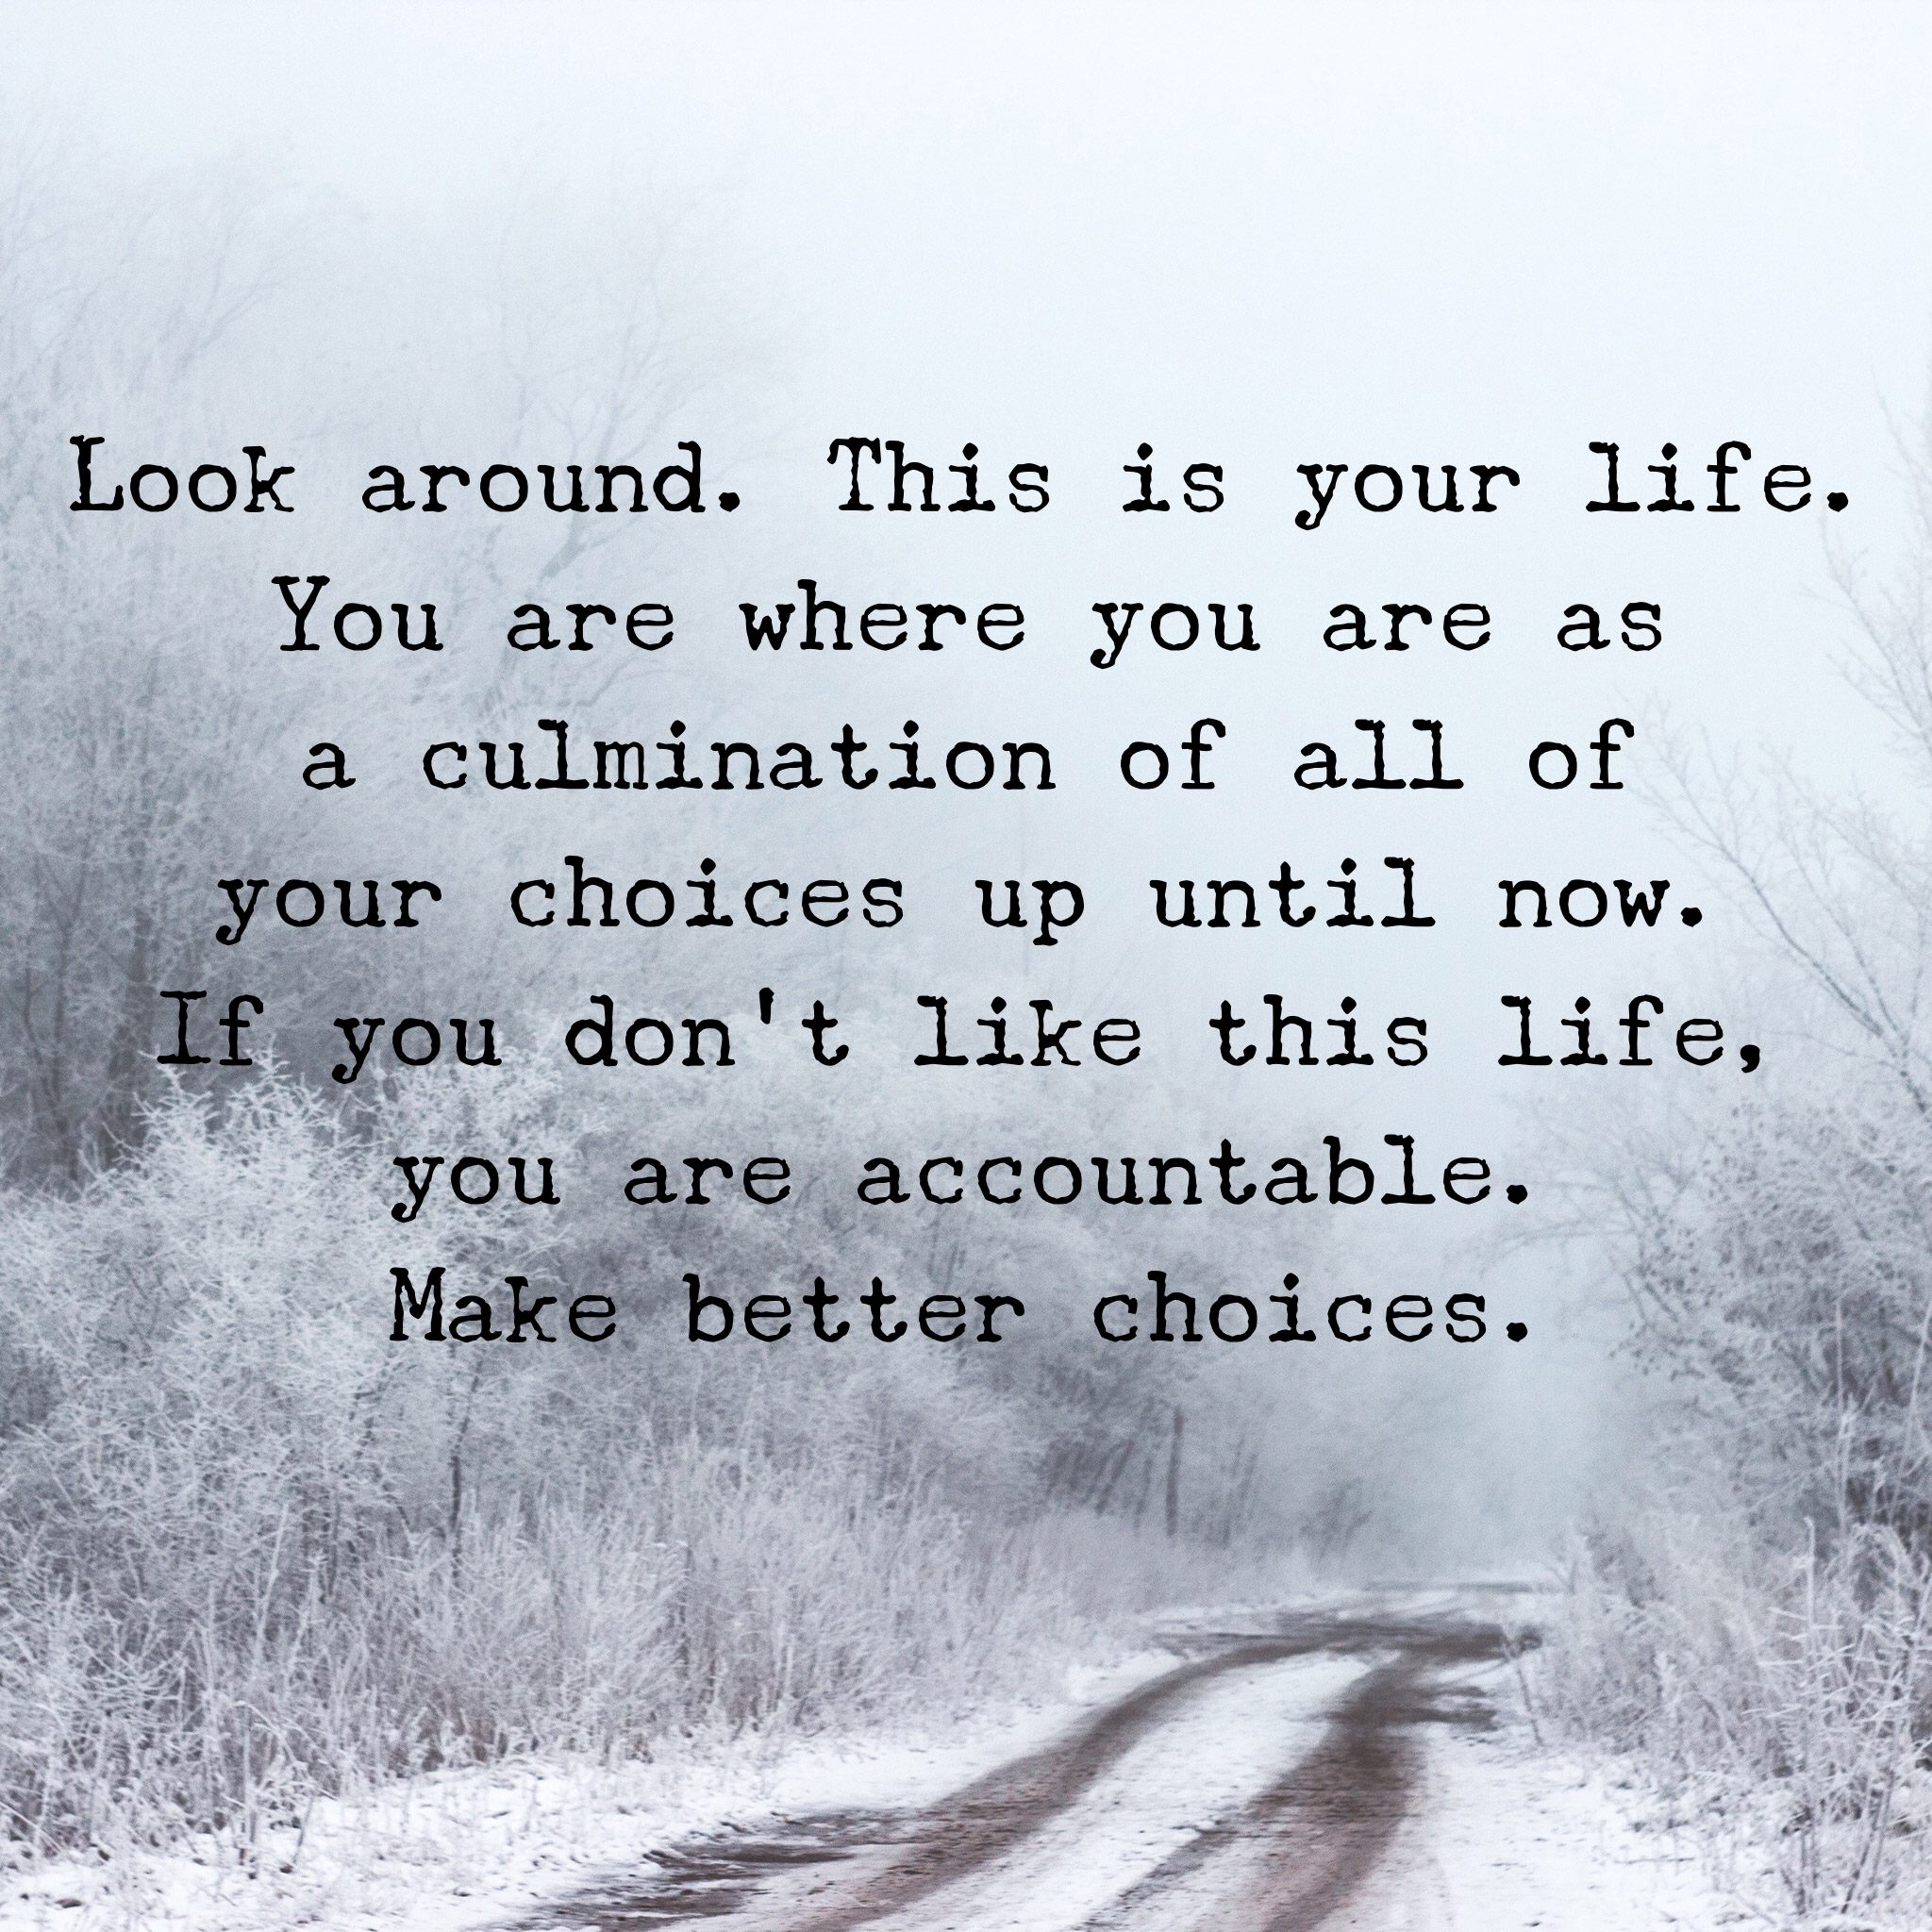 With Every Choice Comes Accountability Which We All Are Accountable For Meaning We Are All Accountable For Inspirational Quotes For Teens Words Quotable Quotes